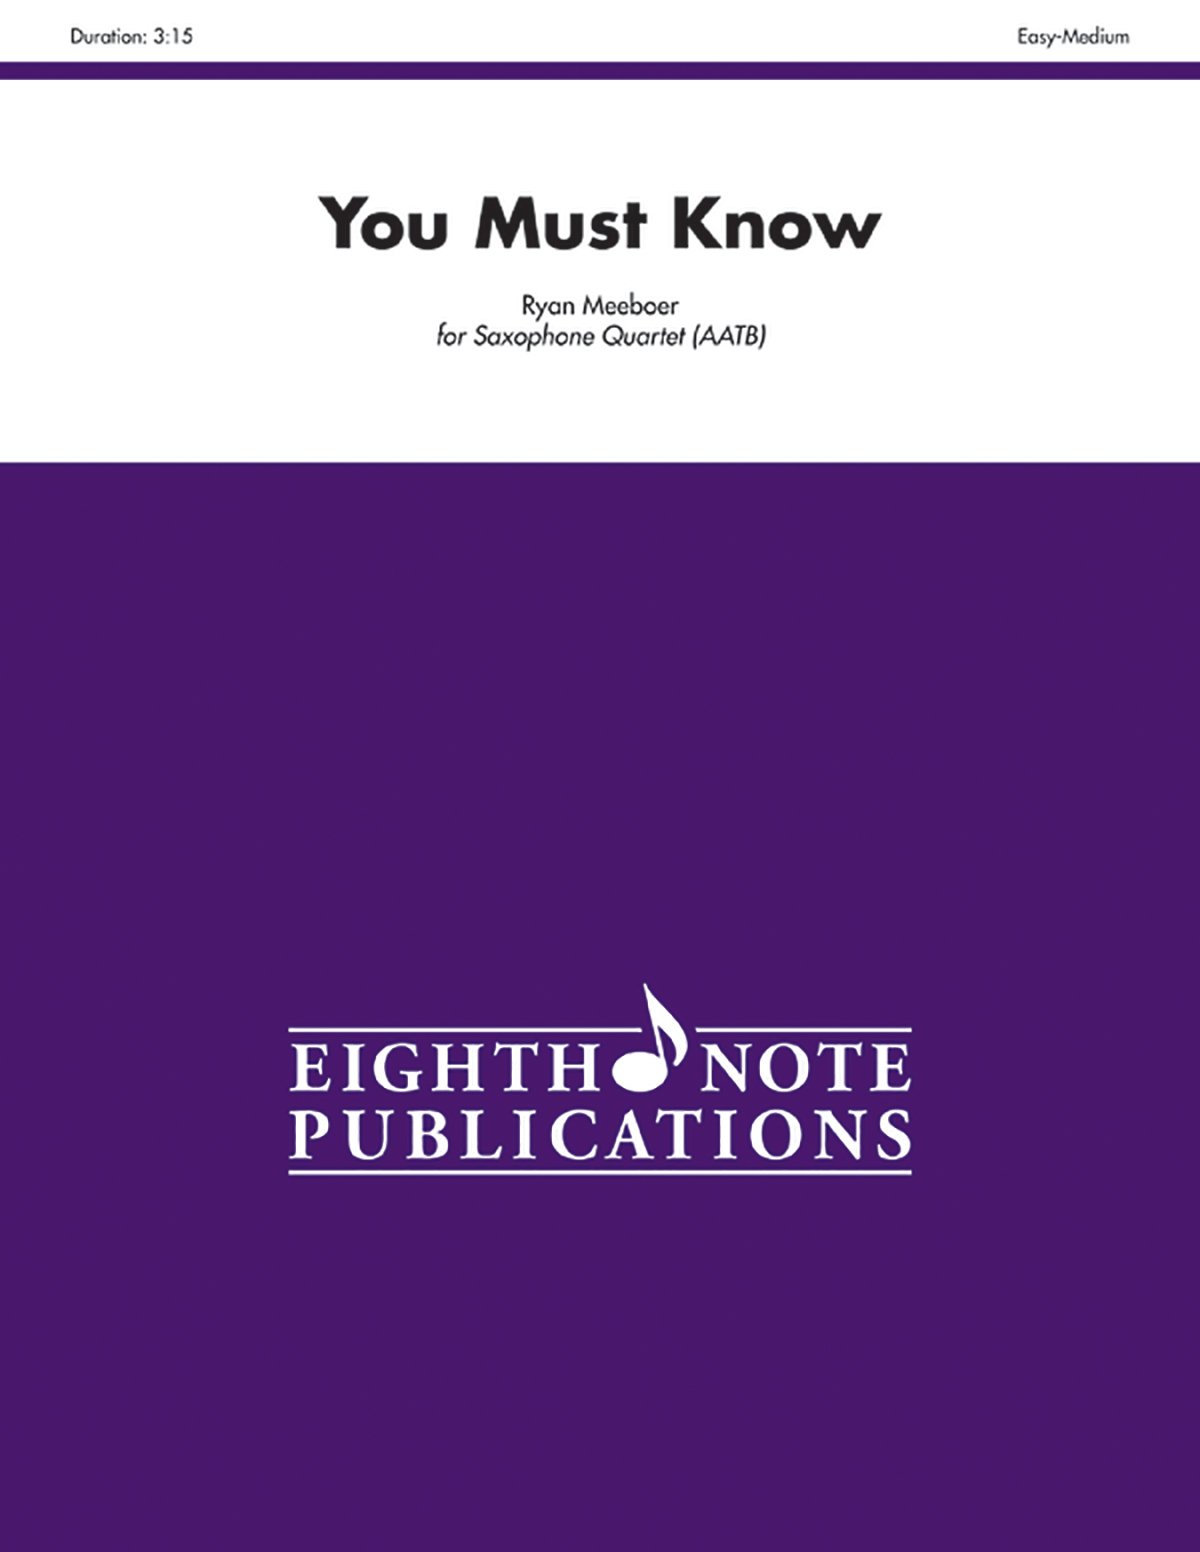 You Must Know: SATB or AATB, Score & Parts (Eighth Note Publications)